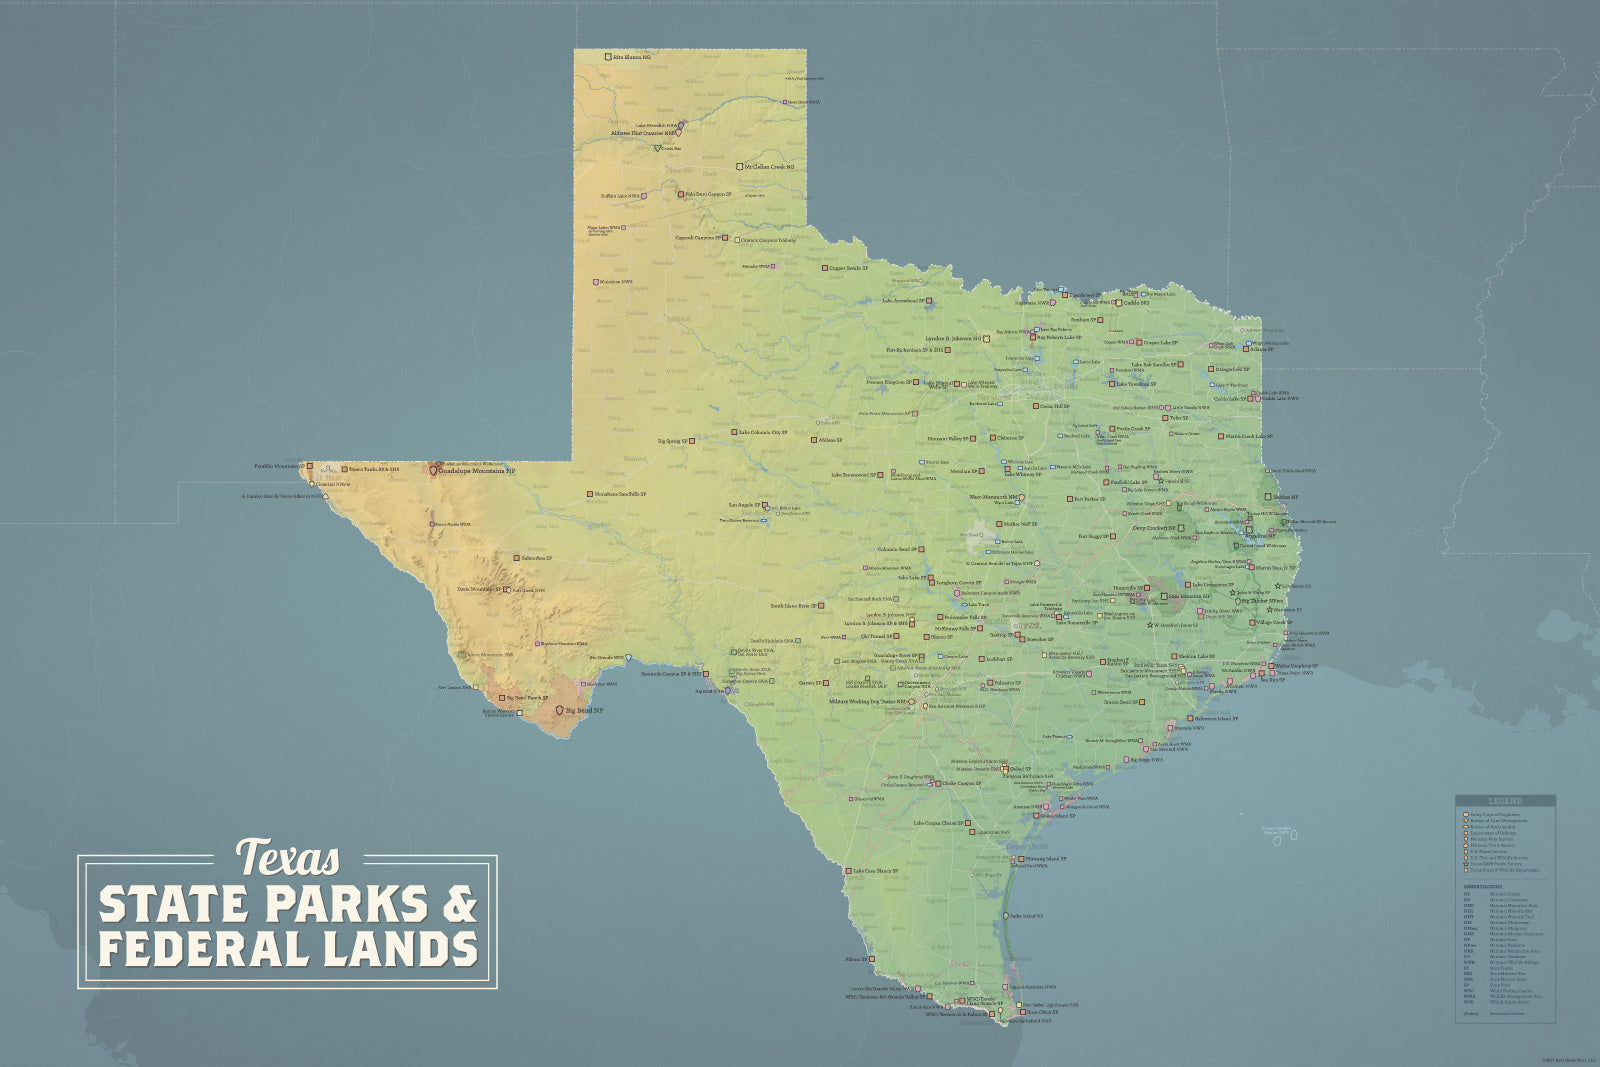 Texas State Parks & Federal Lands Map 24x36 Poster - Best ...